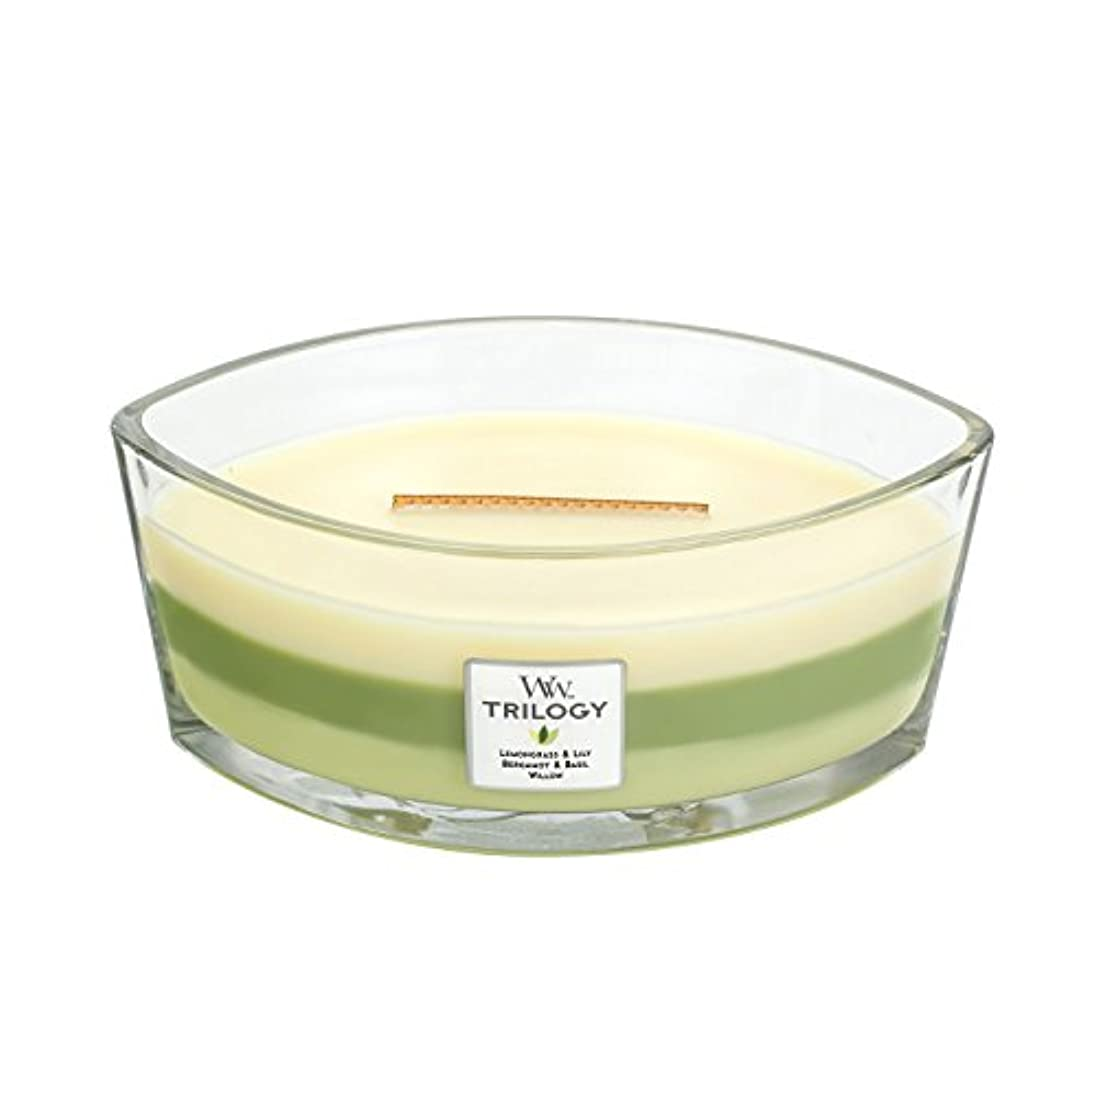 周りシャベル完全に乾くWoodWick Trilogy GARDEN OASIS, 3-in-1 Highly Scented Candle, Ellipse Glass Jar with Original HearthWick Flame,...